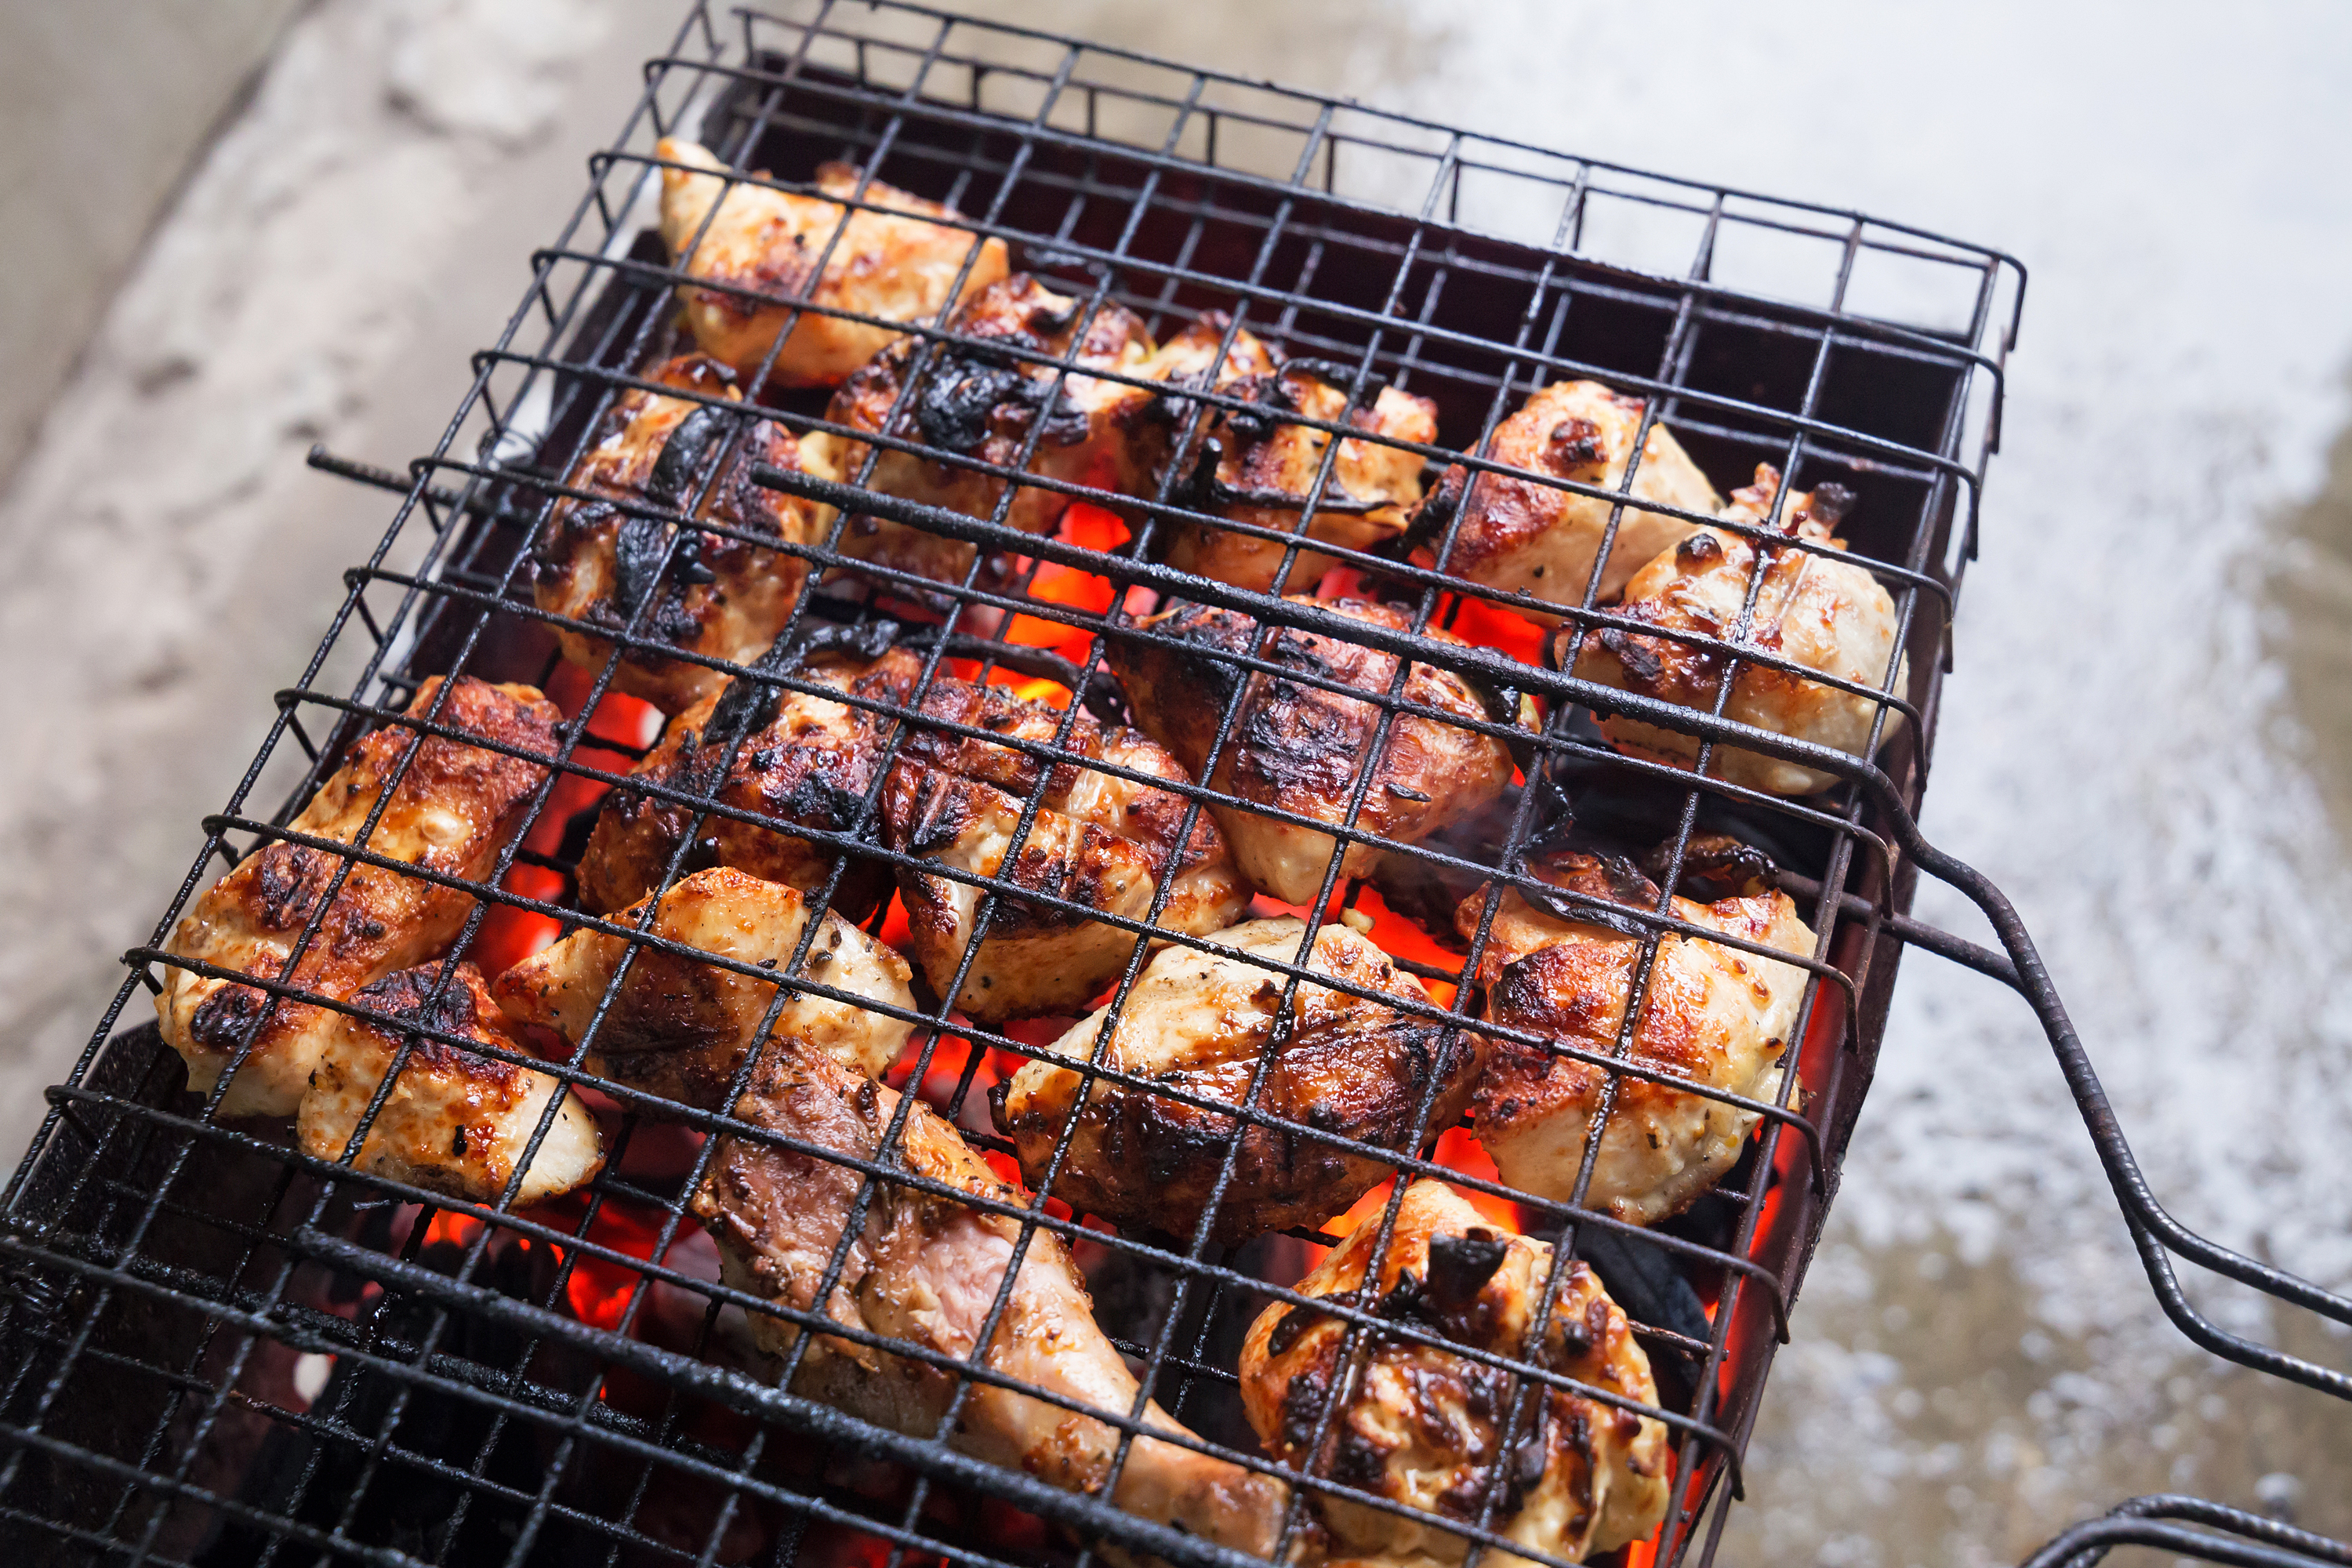 How to Season Porcelain Grill Grates  LEAFtv